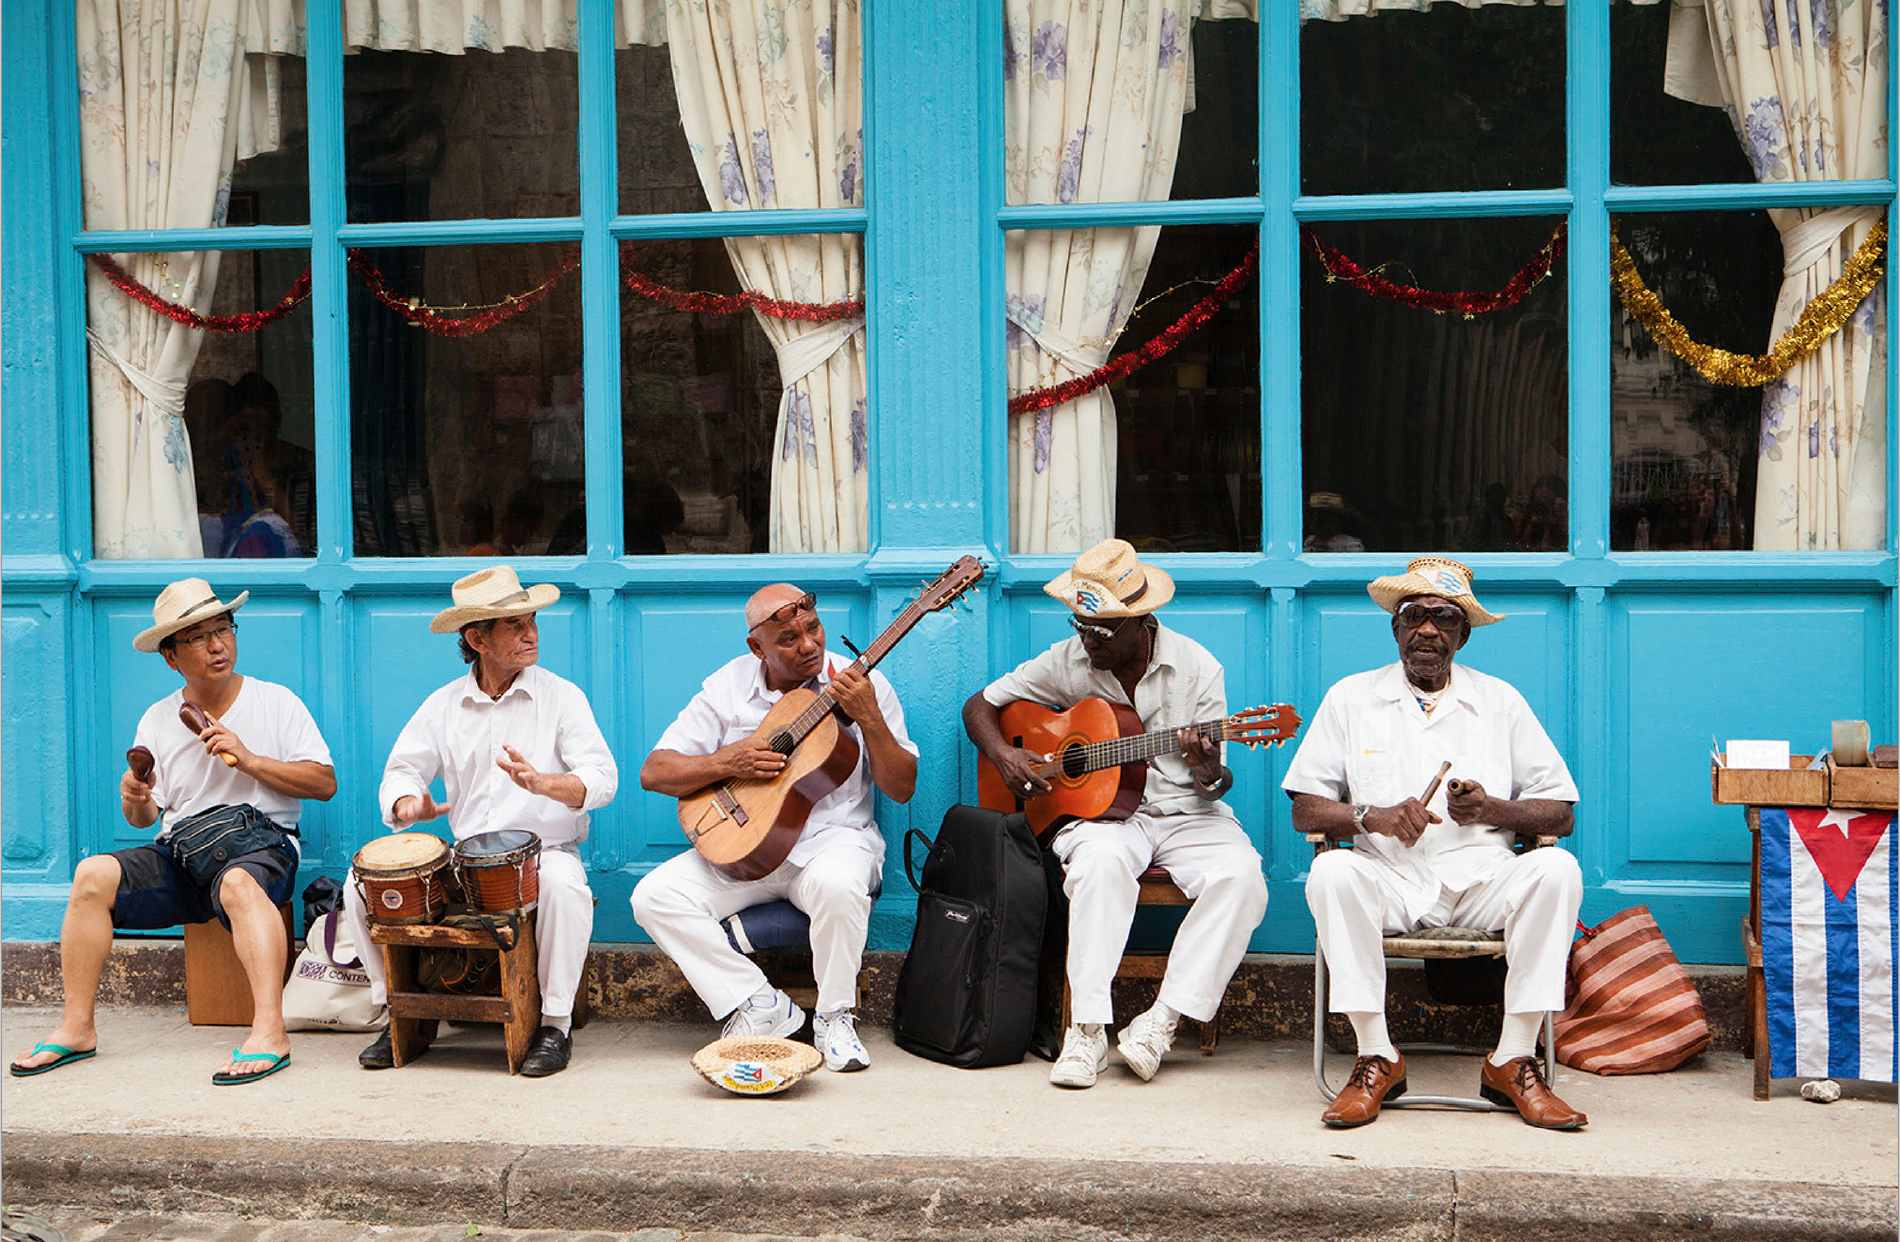 Cuba: Photographs - Photography by Elite Henenson. Mentored by Macduff Everton